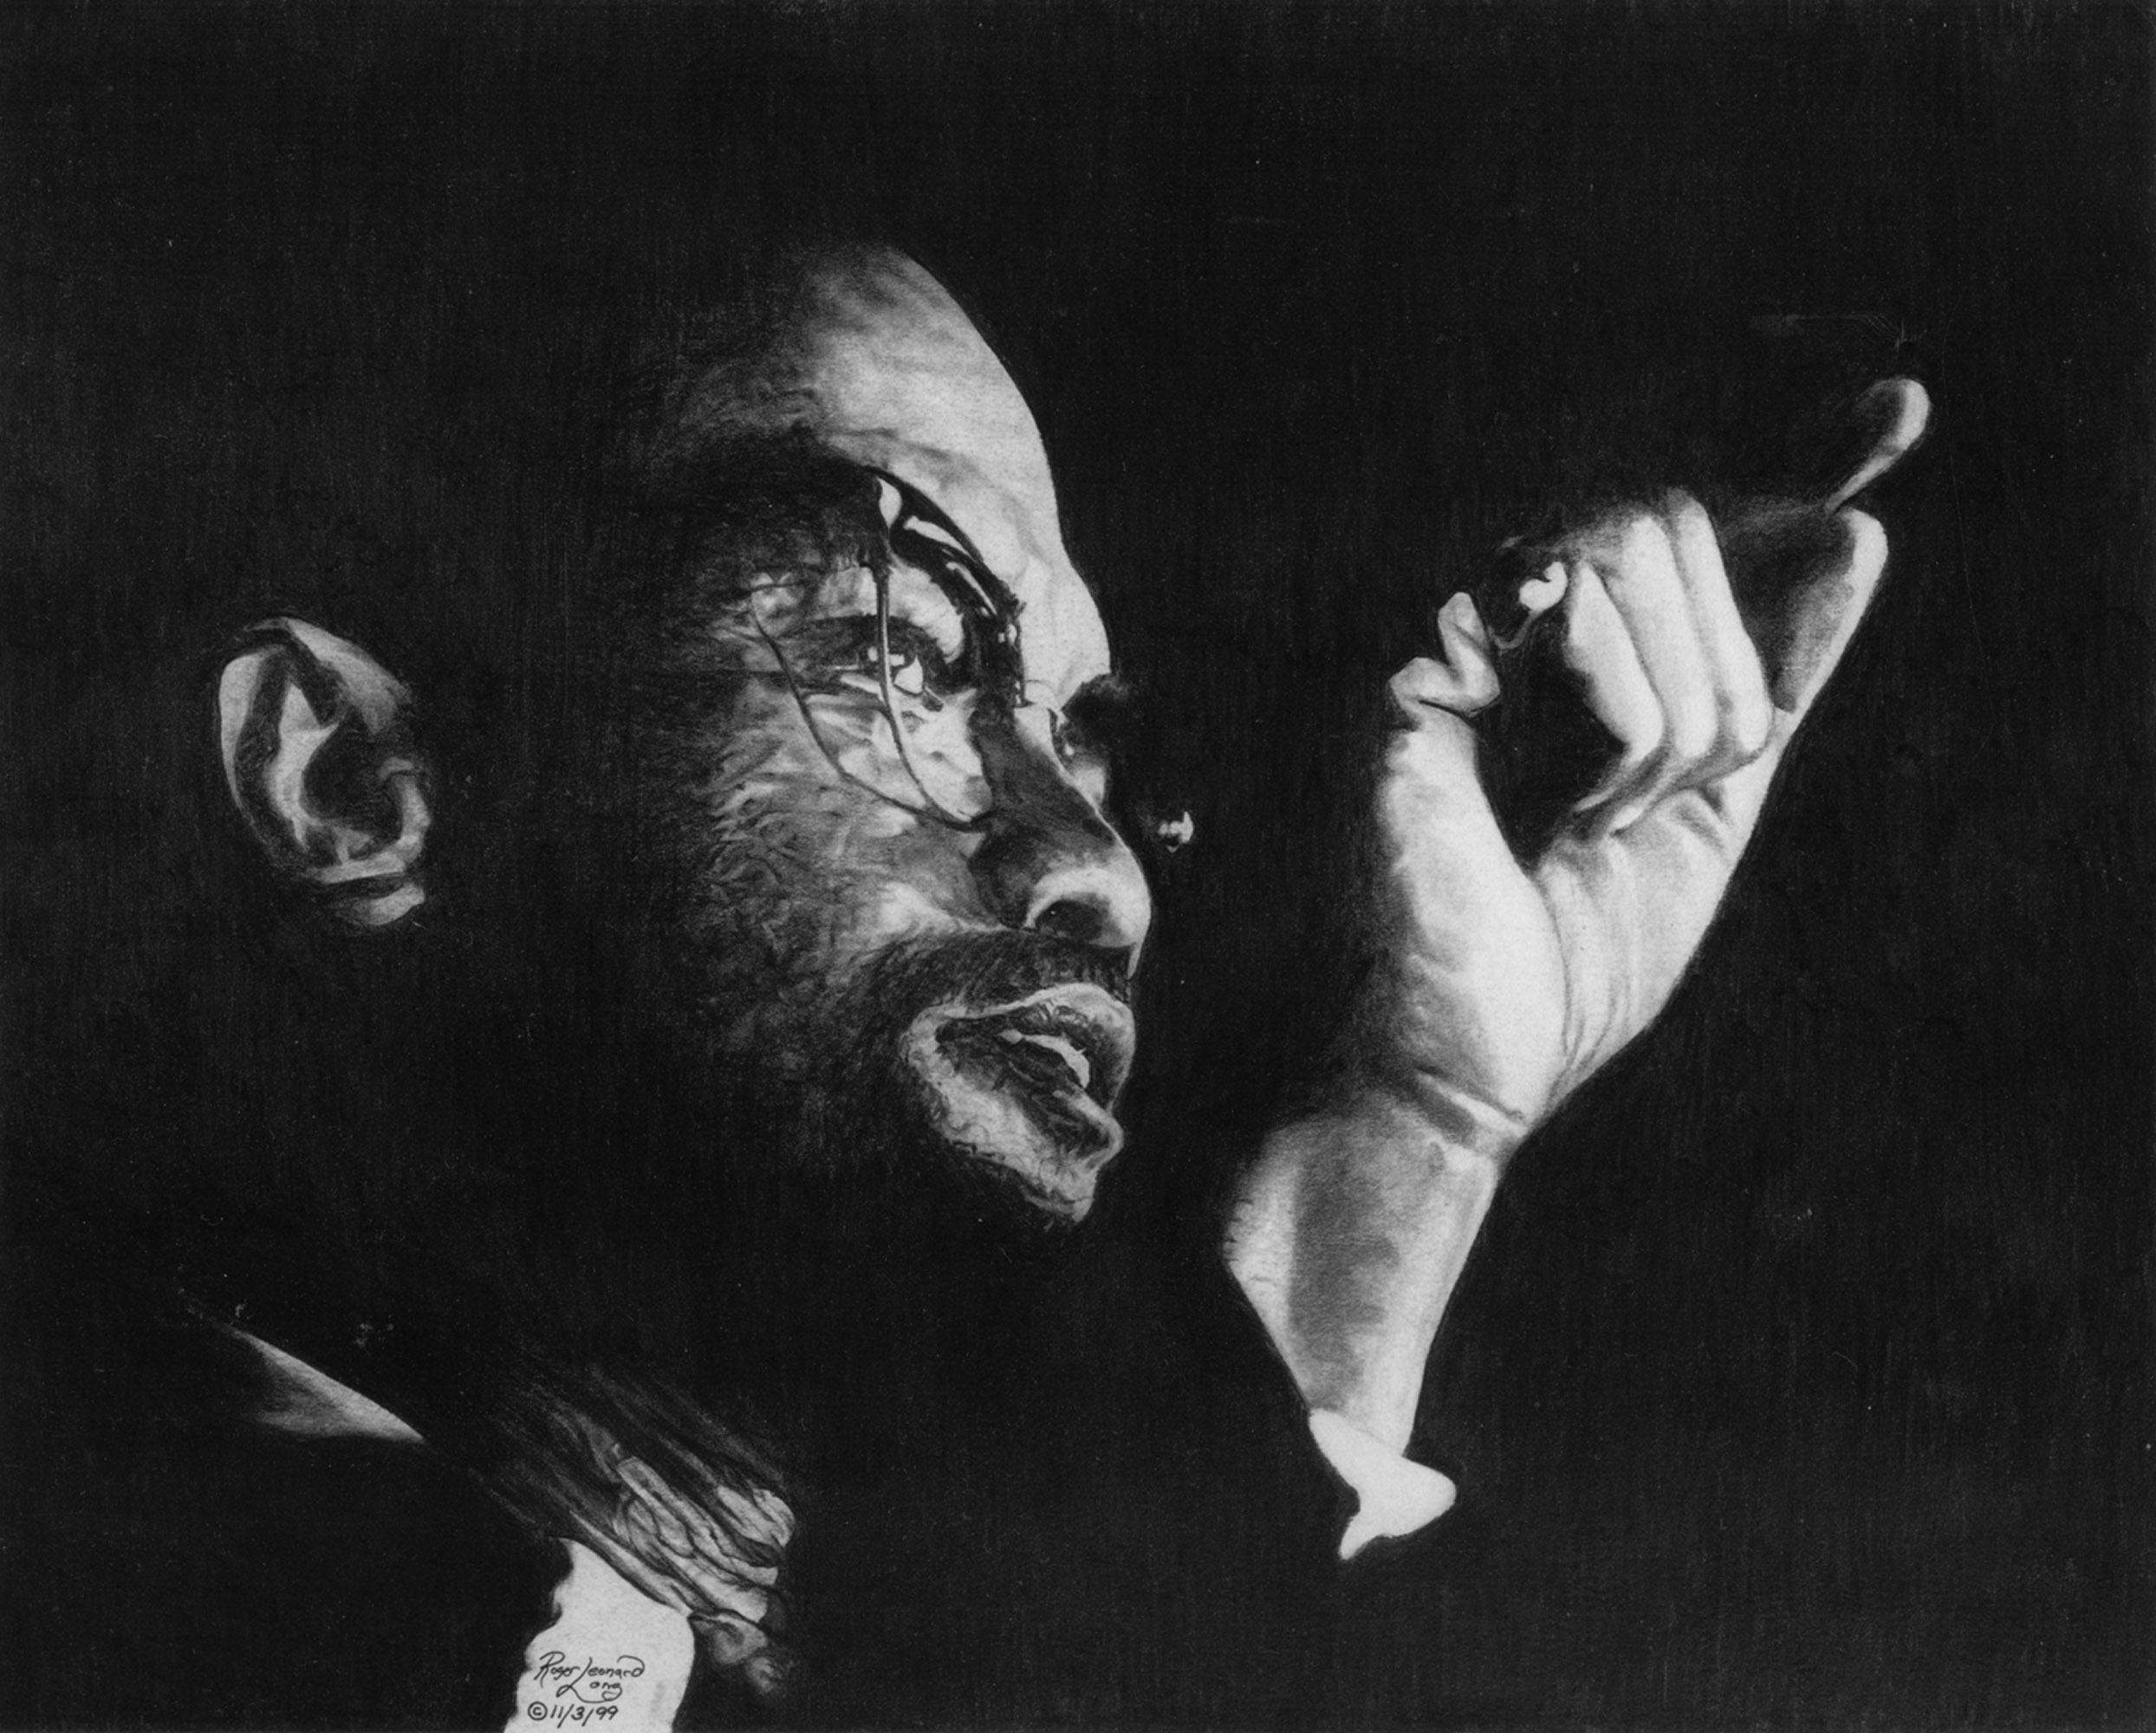 This exclusive fine art print is of Malcolm X. created with graphite. It is part of my original collection of legendary political, cultural, musical giants. Your high-quality print captures the realism of that original work. The print will be delivered plastic-wrapped and ready for easy framing. Thank you for collecting/viewing. Join my mailing list to get the lastest news on portrait art print releases and more!